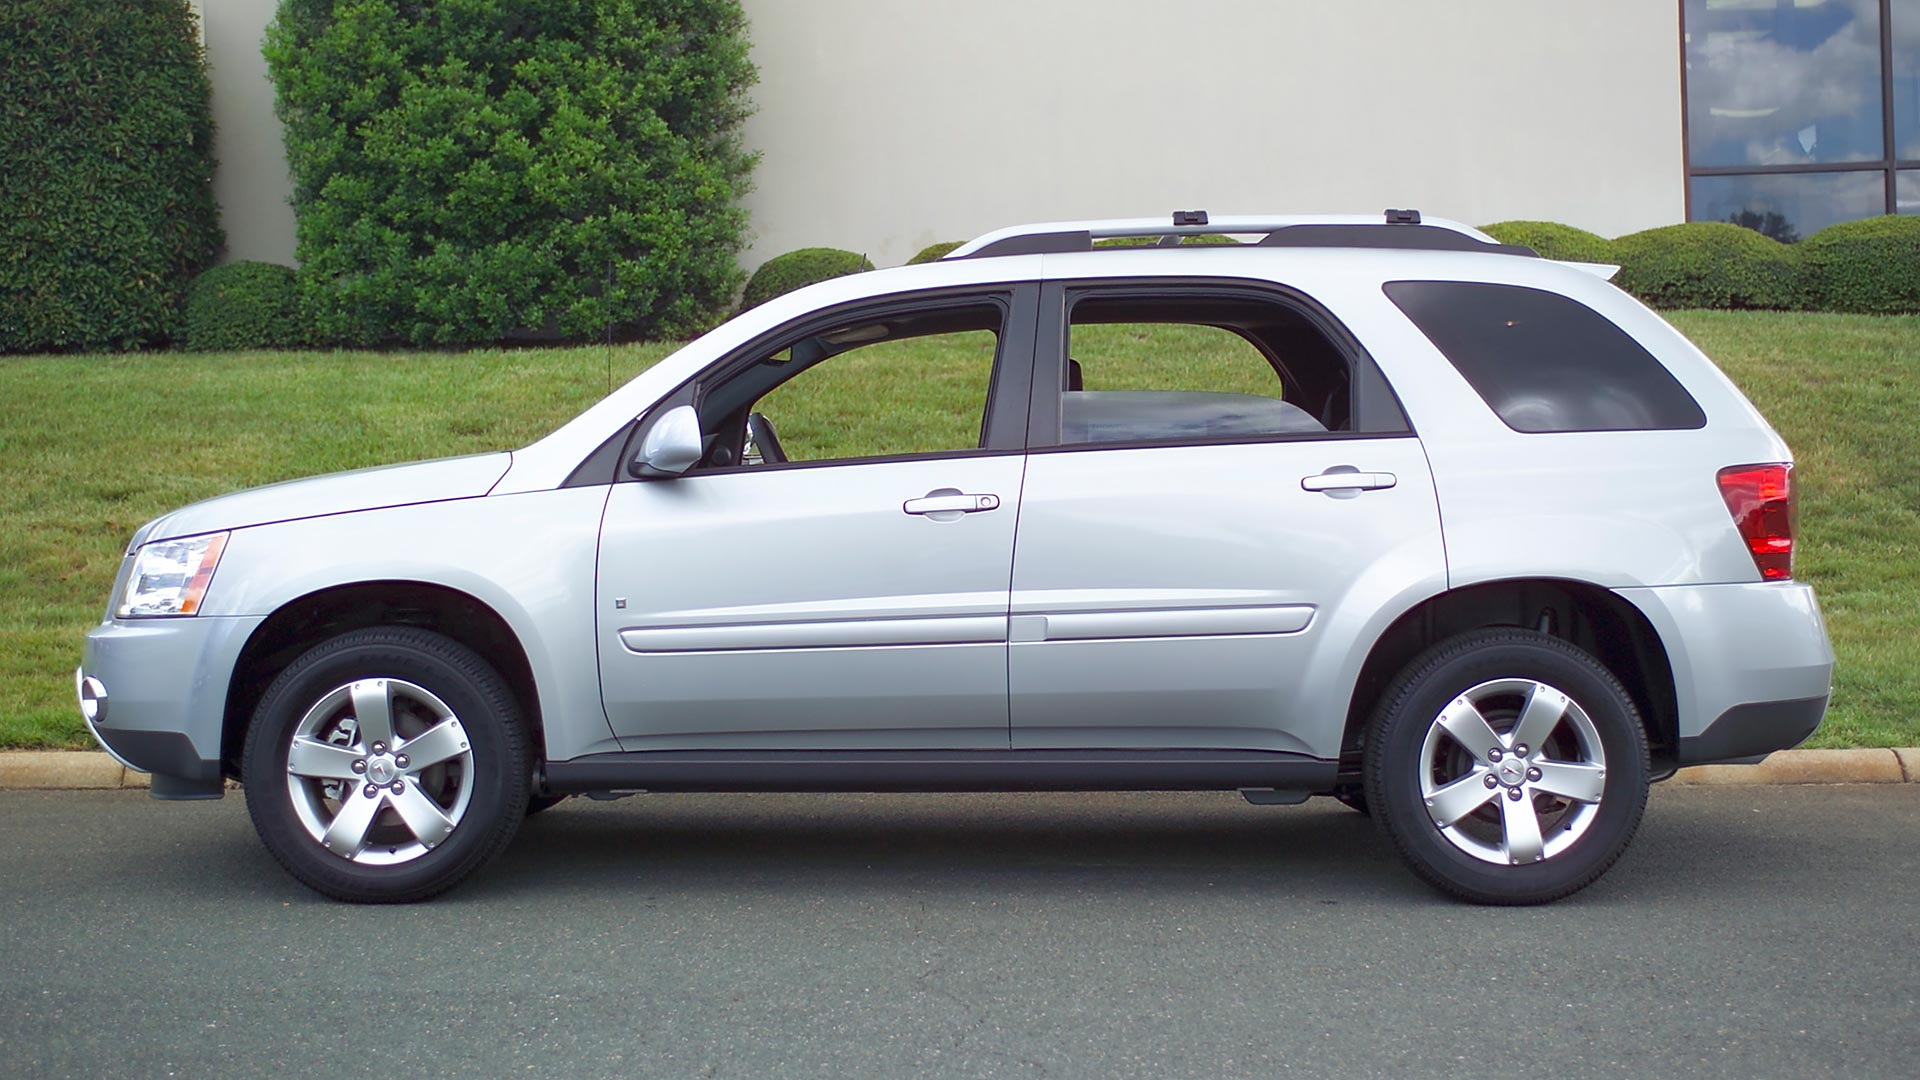 2009 Pontiac Torrent 4-door SUV